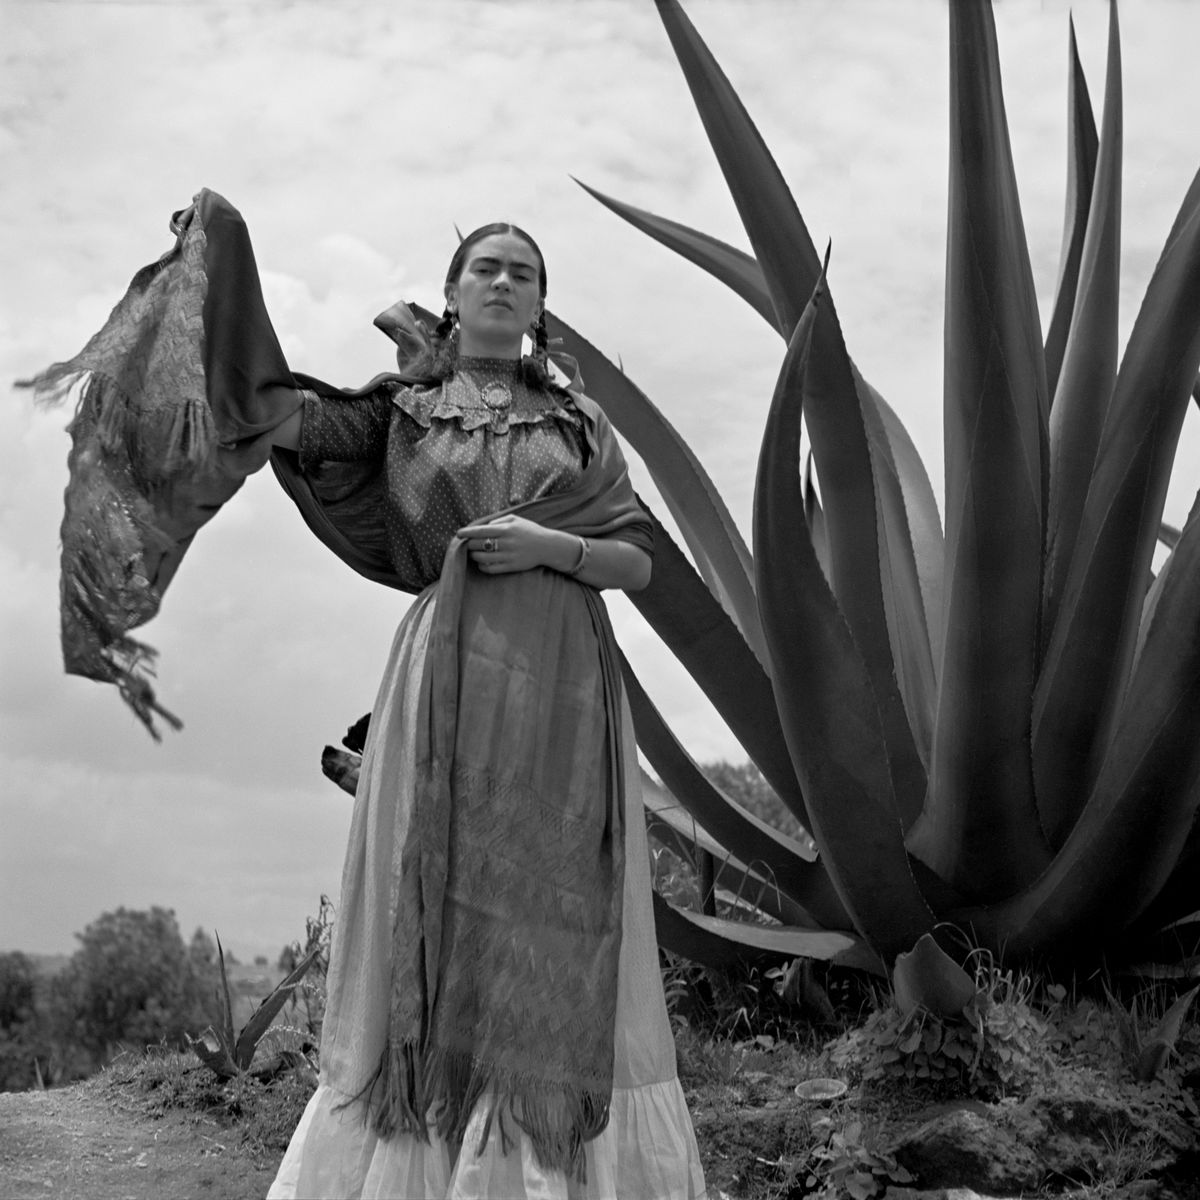 Frida Kahlo standing next to an agave plant, 'Señoras of Mexico' 1937